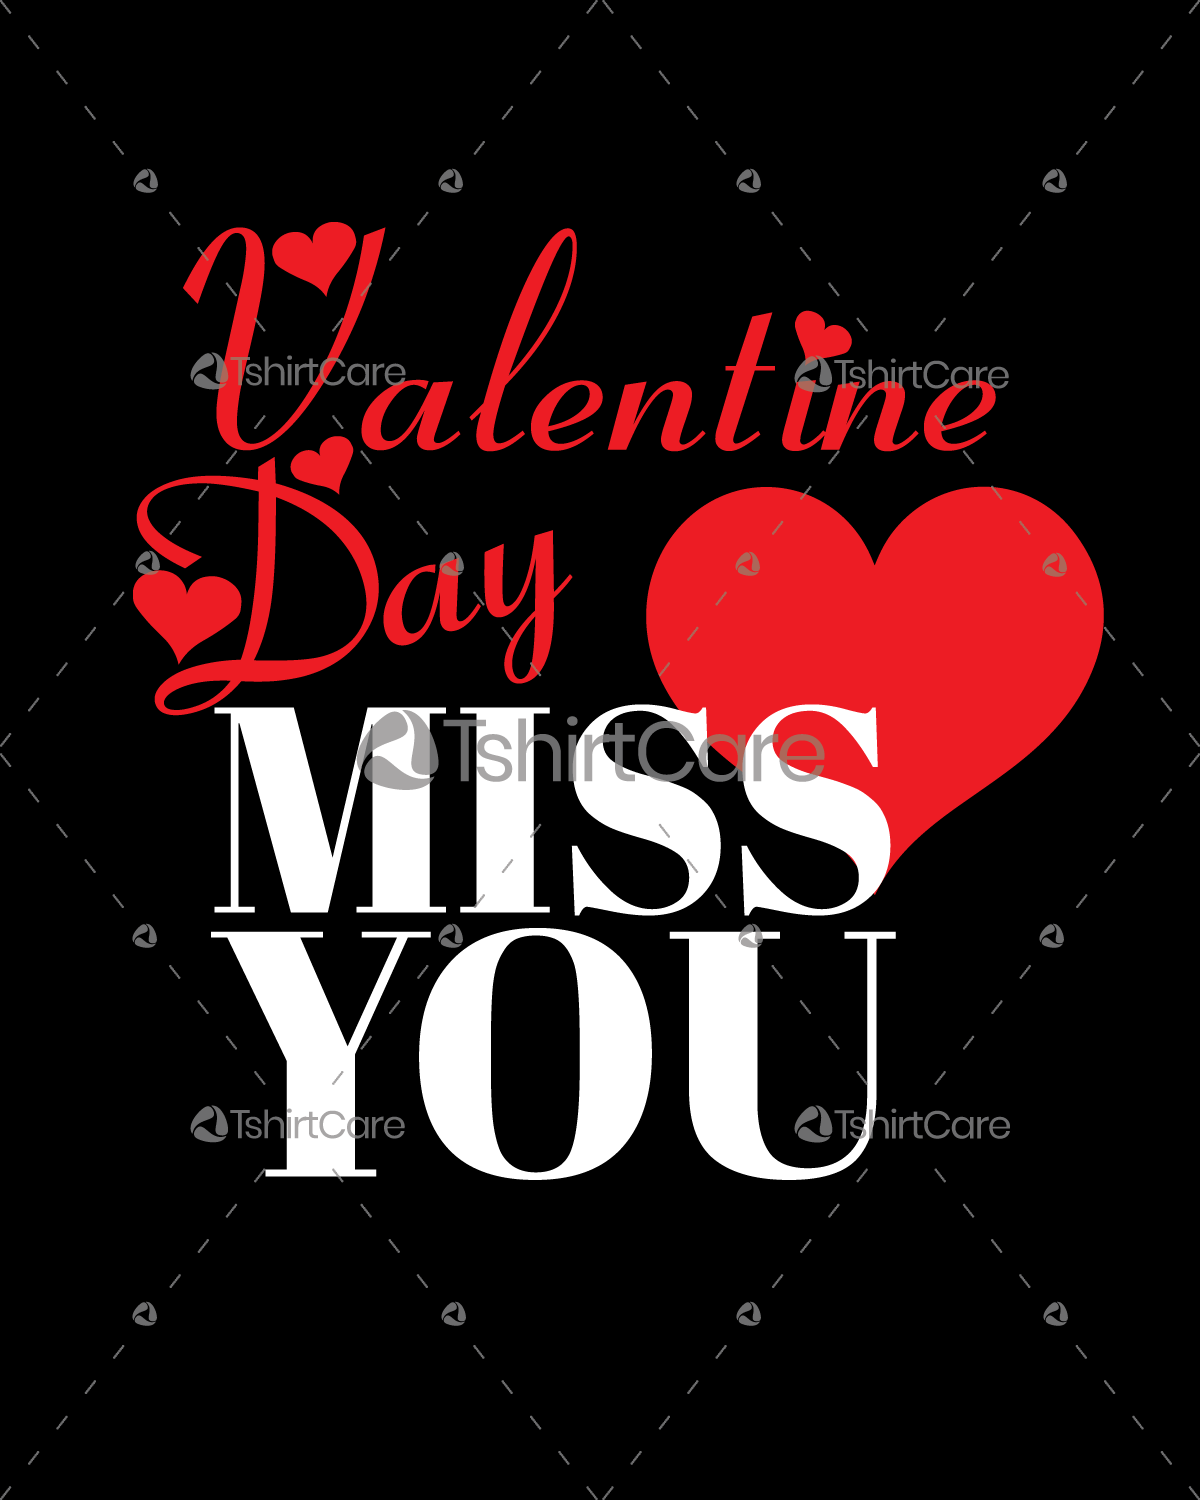 81e4aa11d1 Valentine day i miss you T-shirt Design for Gift - TshirtCare